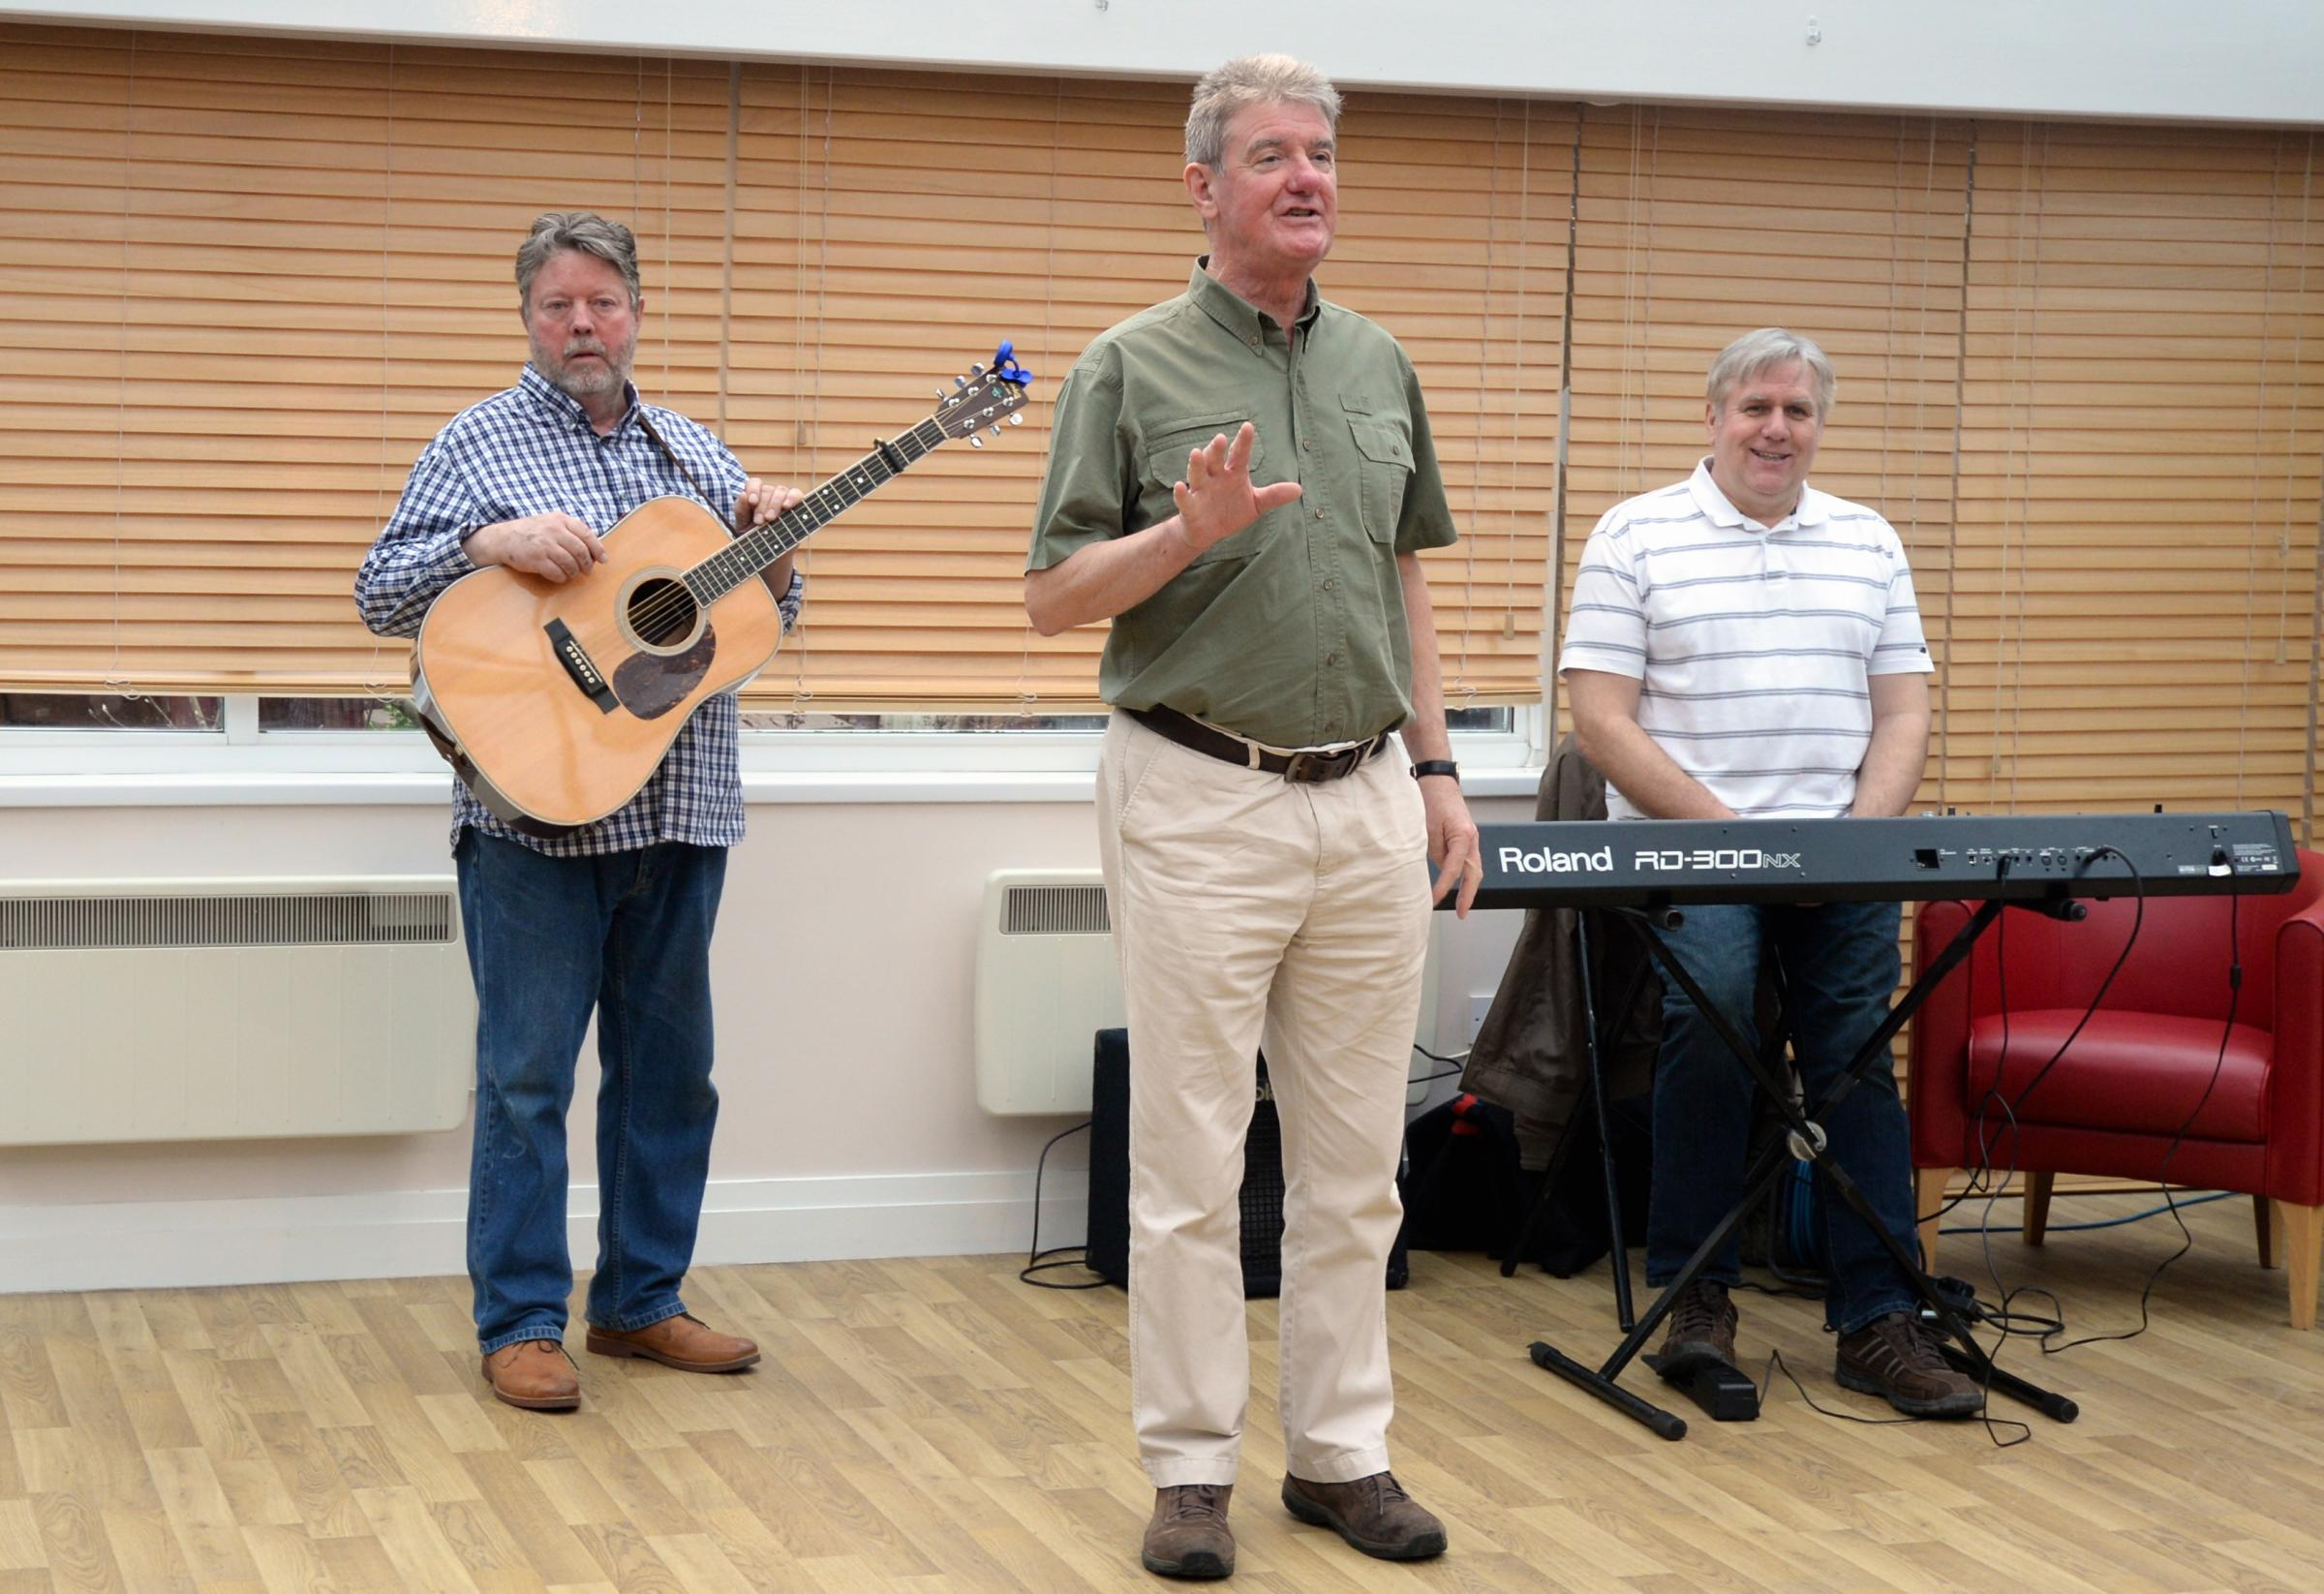 Houghton Weavers when they played for patients at East Lancashire Hospice in Blackburn